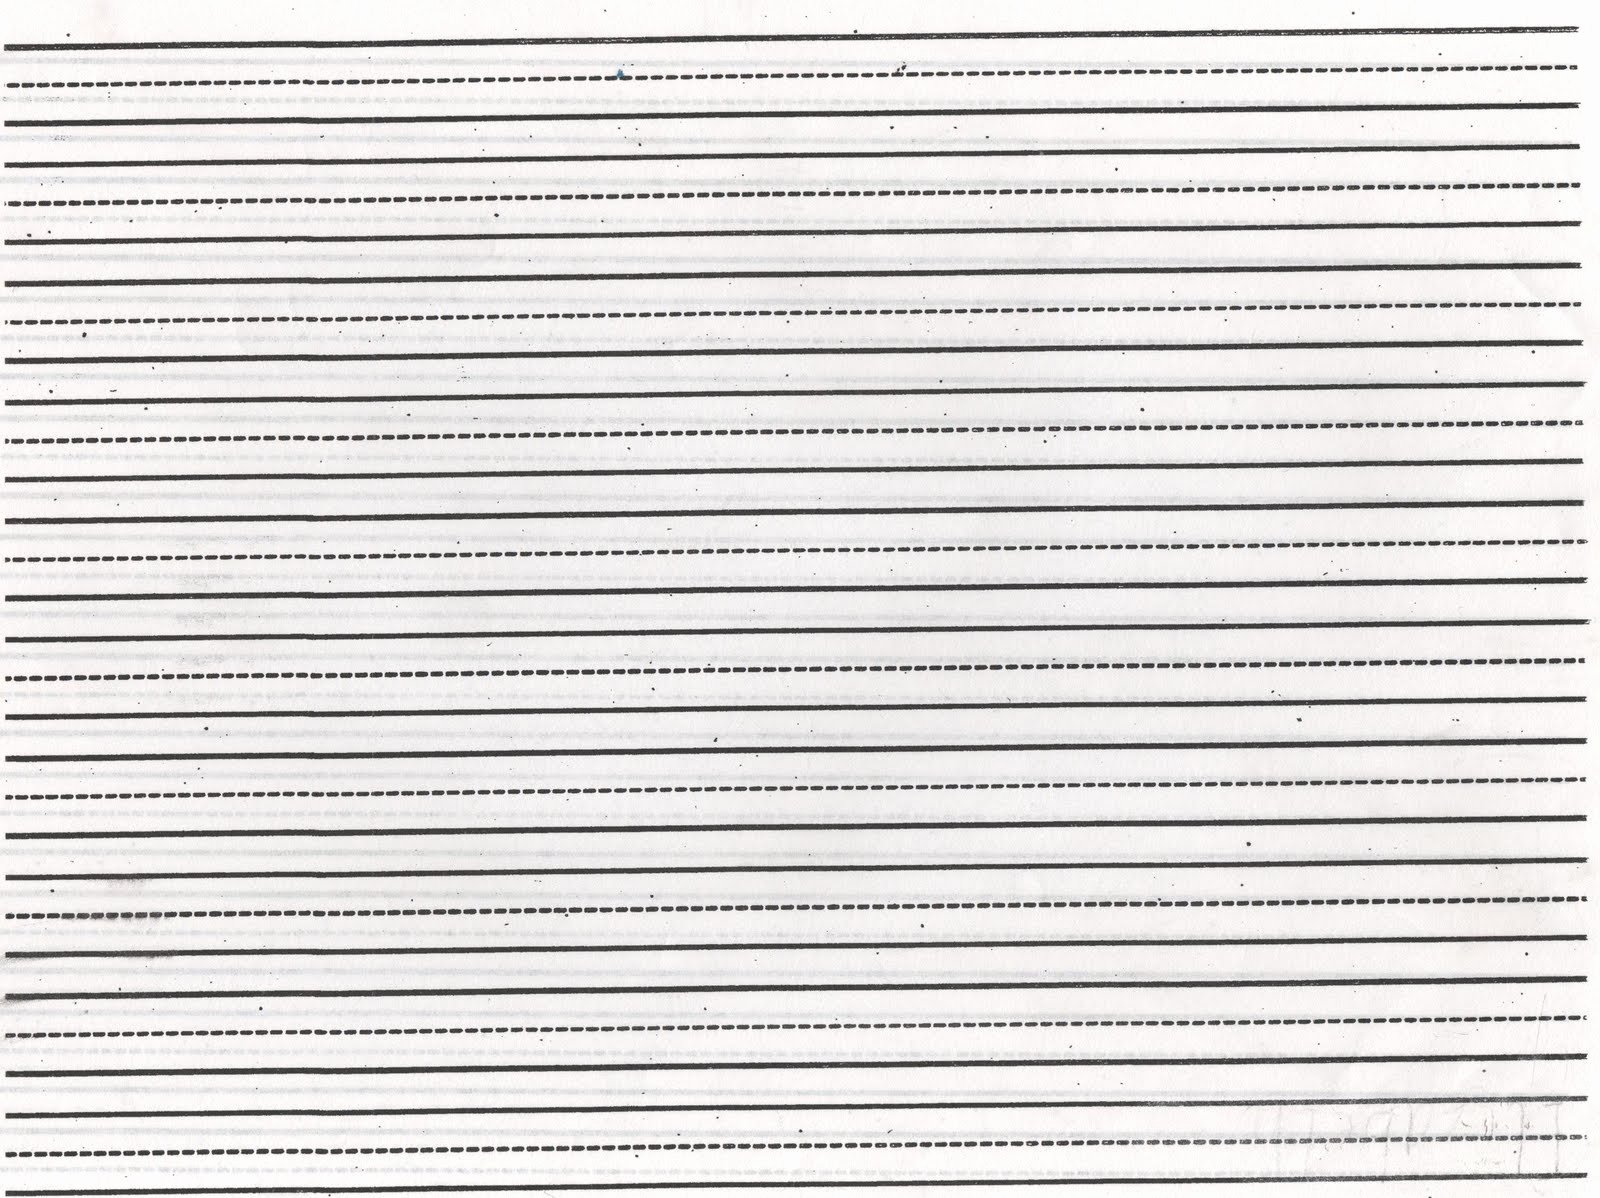 Free Lined Paper to Print Elegant Elementary School Enrichment Activities Lined Paper